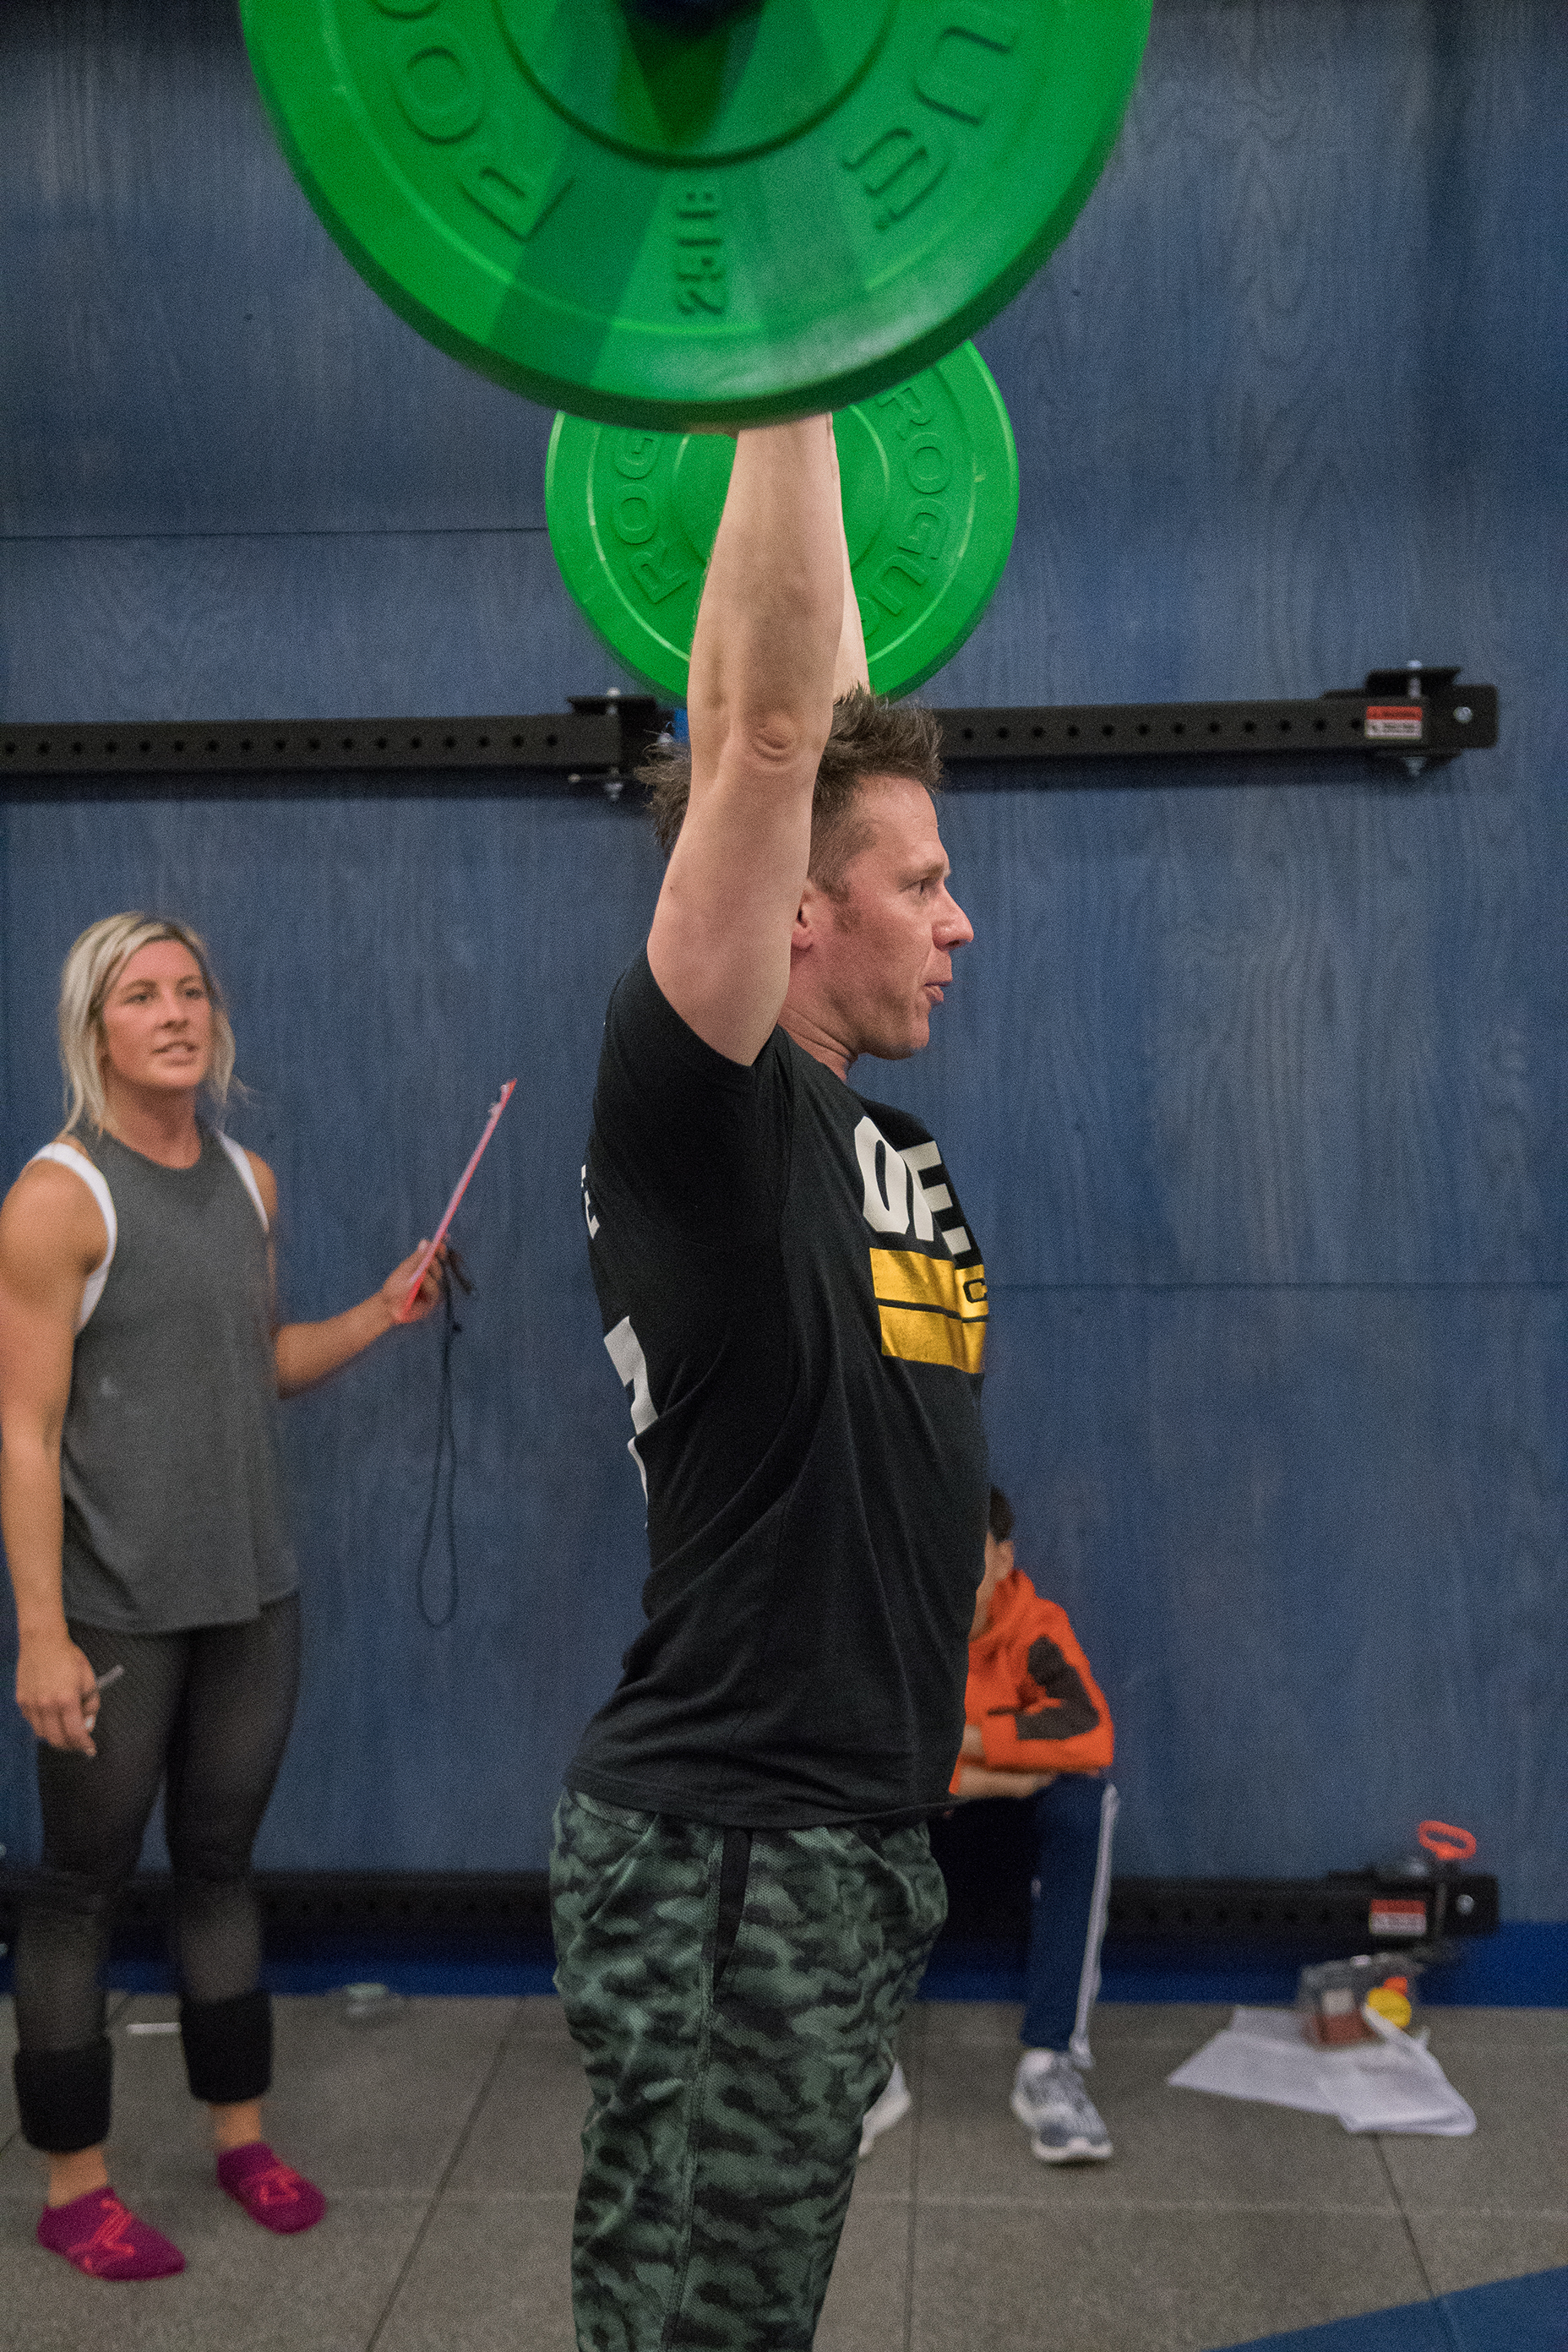 ICE NYC CrossFit Open 17.5 @martsromero - Quick Selects 020 20170324.jpg